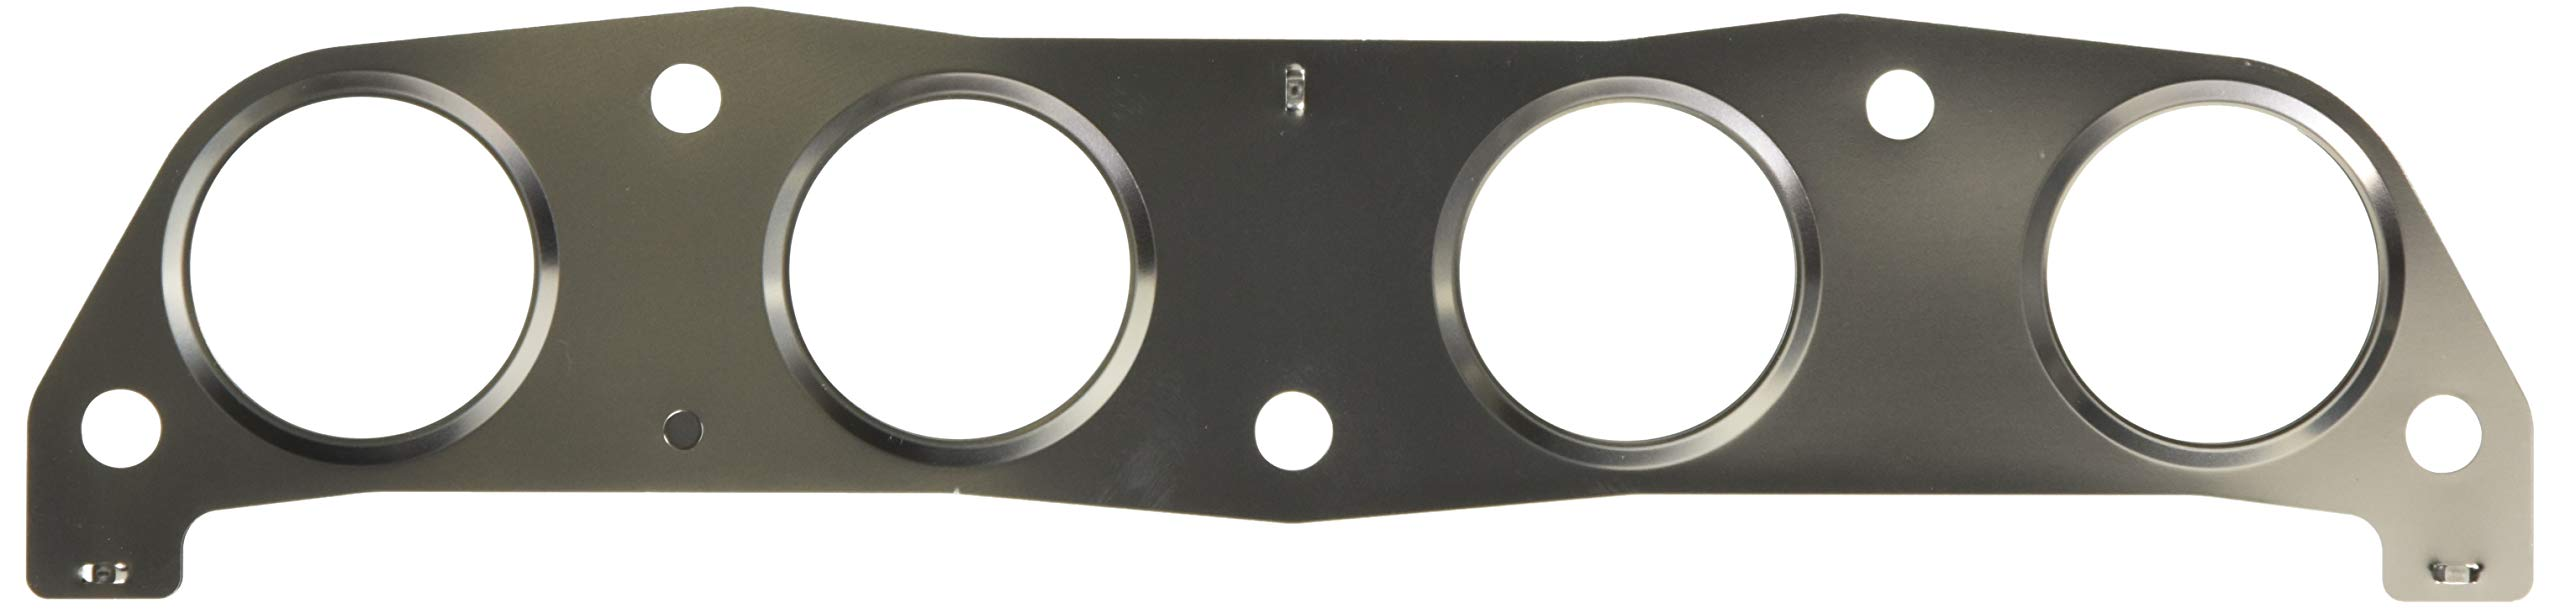 MAHLE Original MS19202 Exhaust Manifold Gasket by MAHLE Original